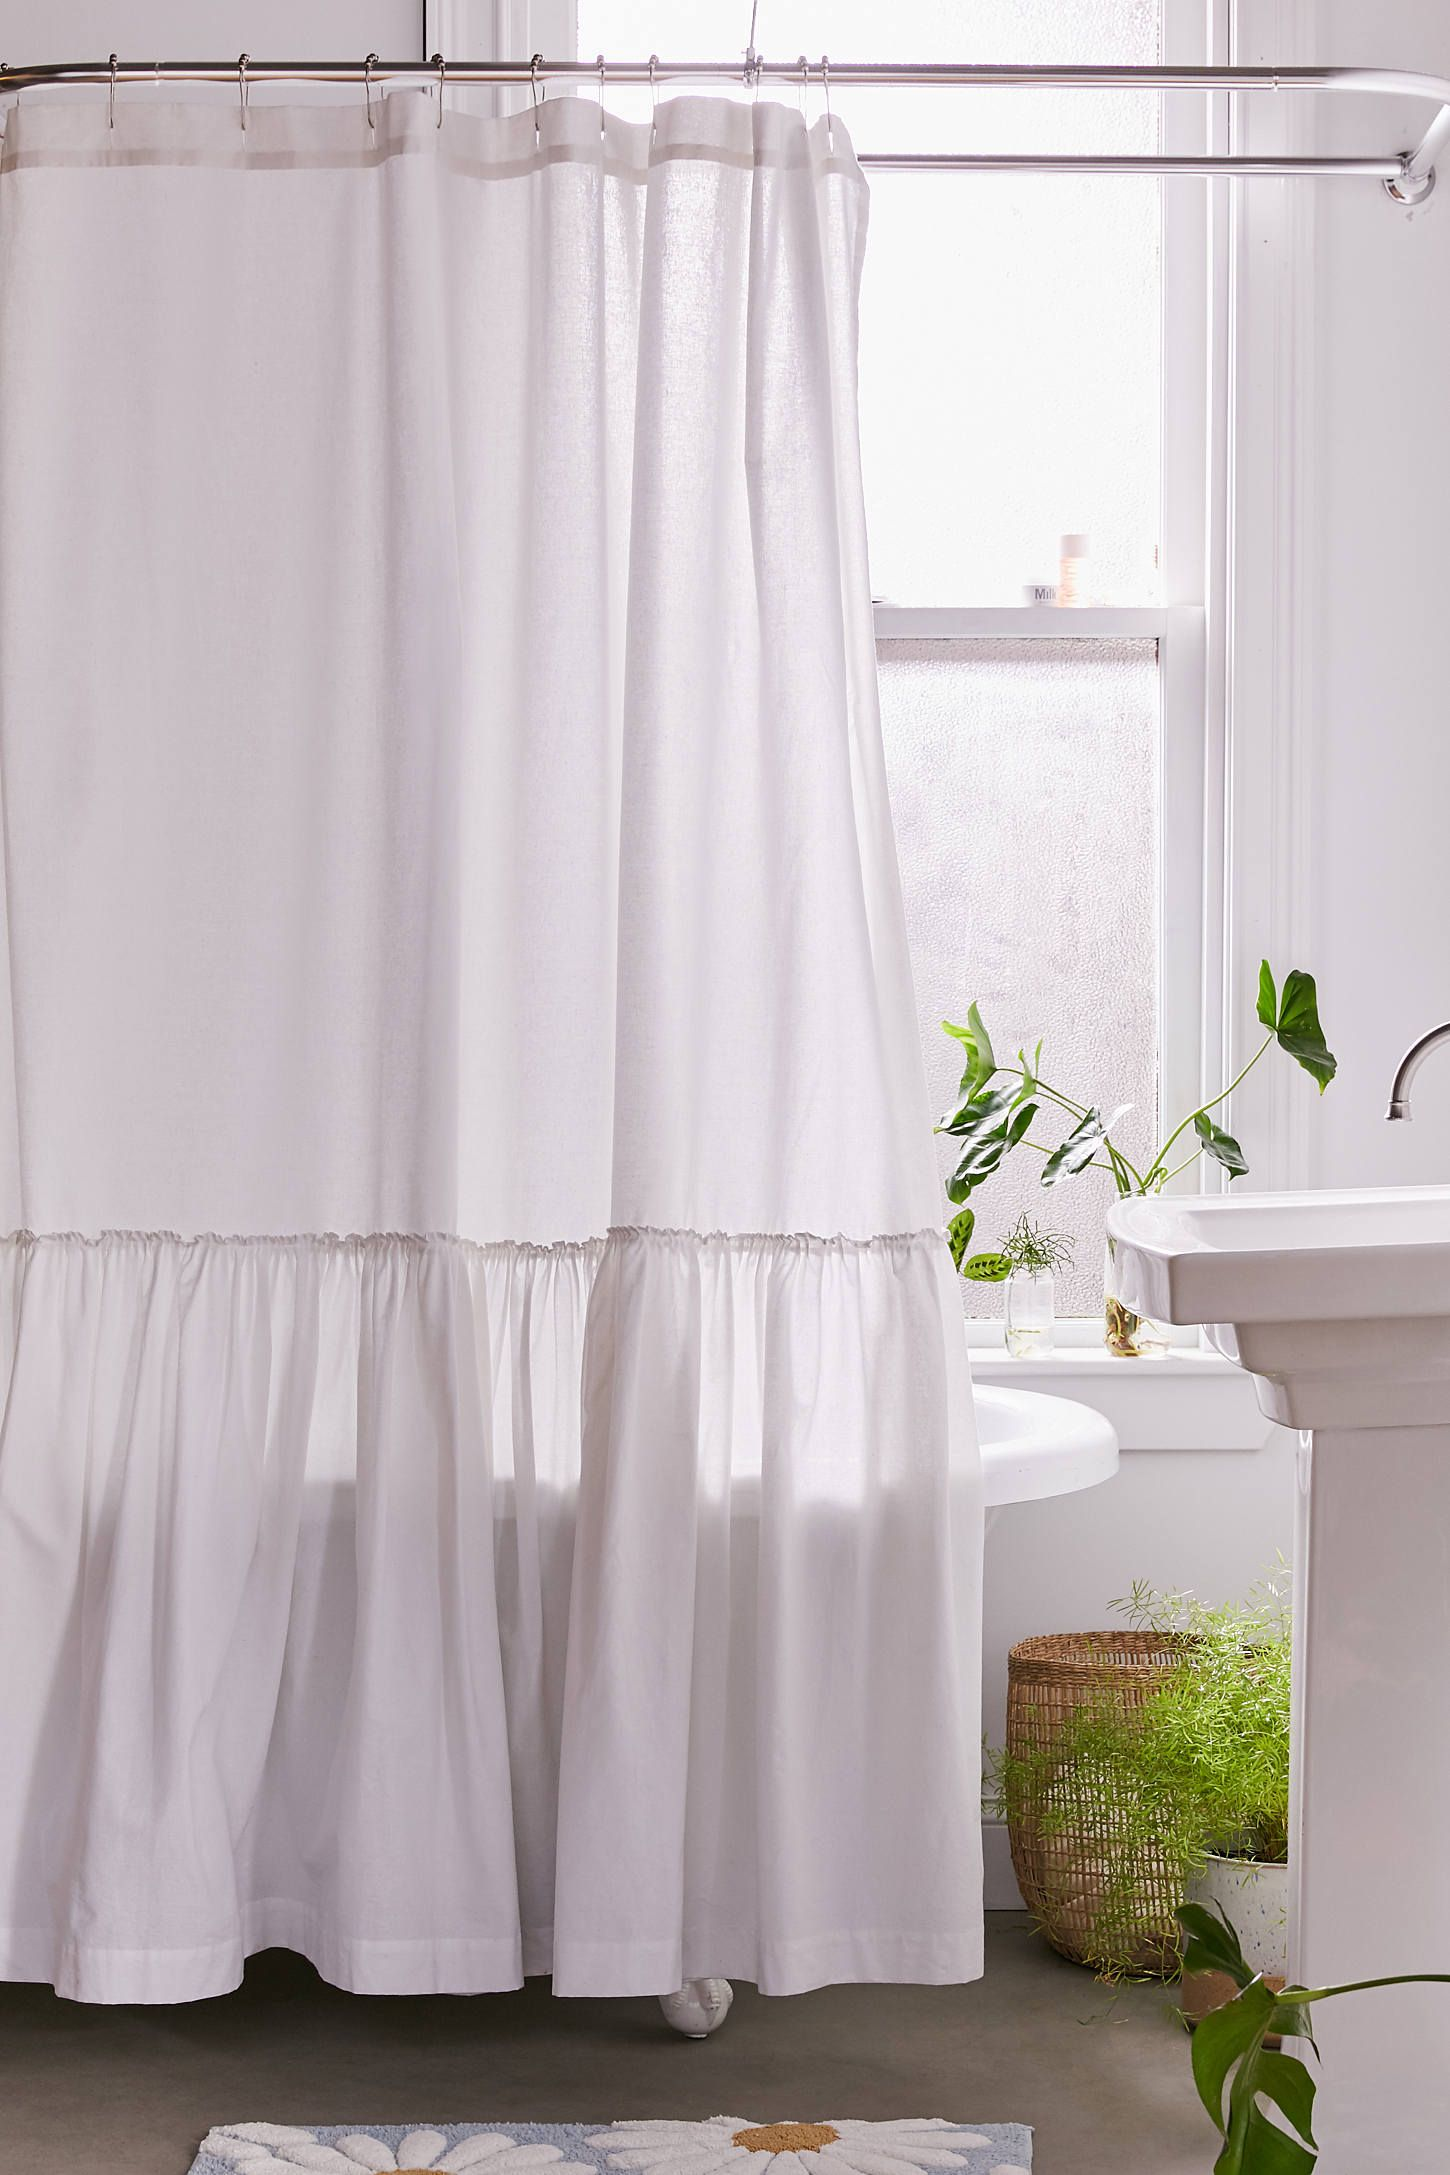 Overscale Ruffle Shower Curtain Urban Outfitters Ruffle Shower